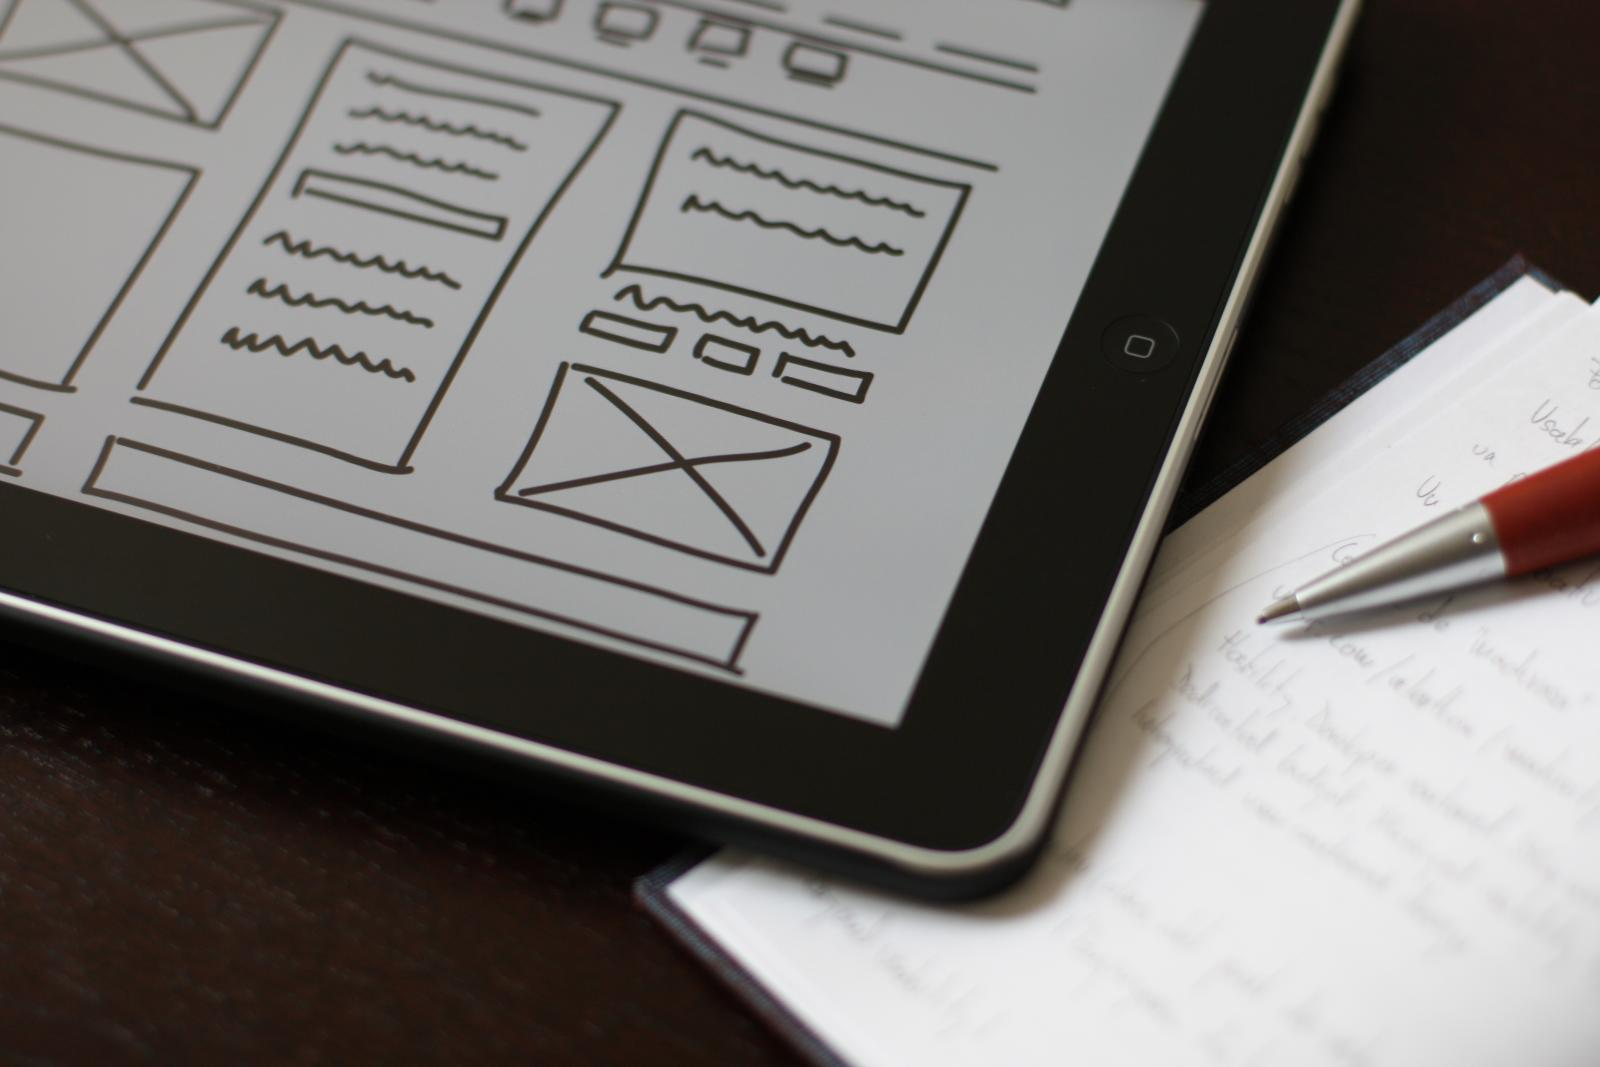 Resources: The Guide to Wireframing